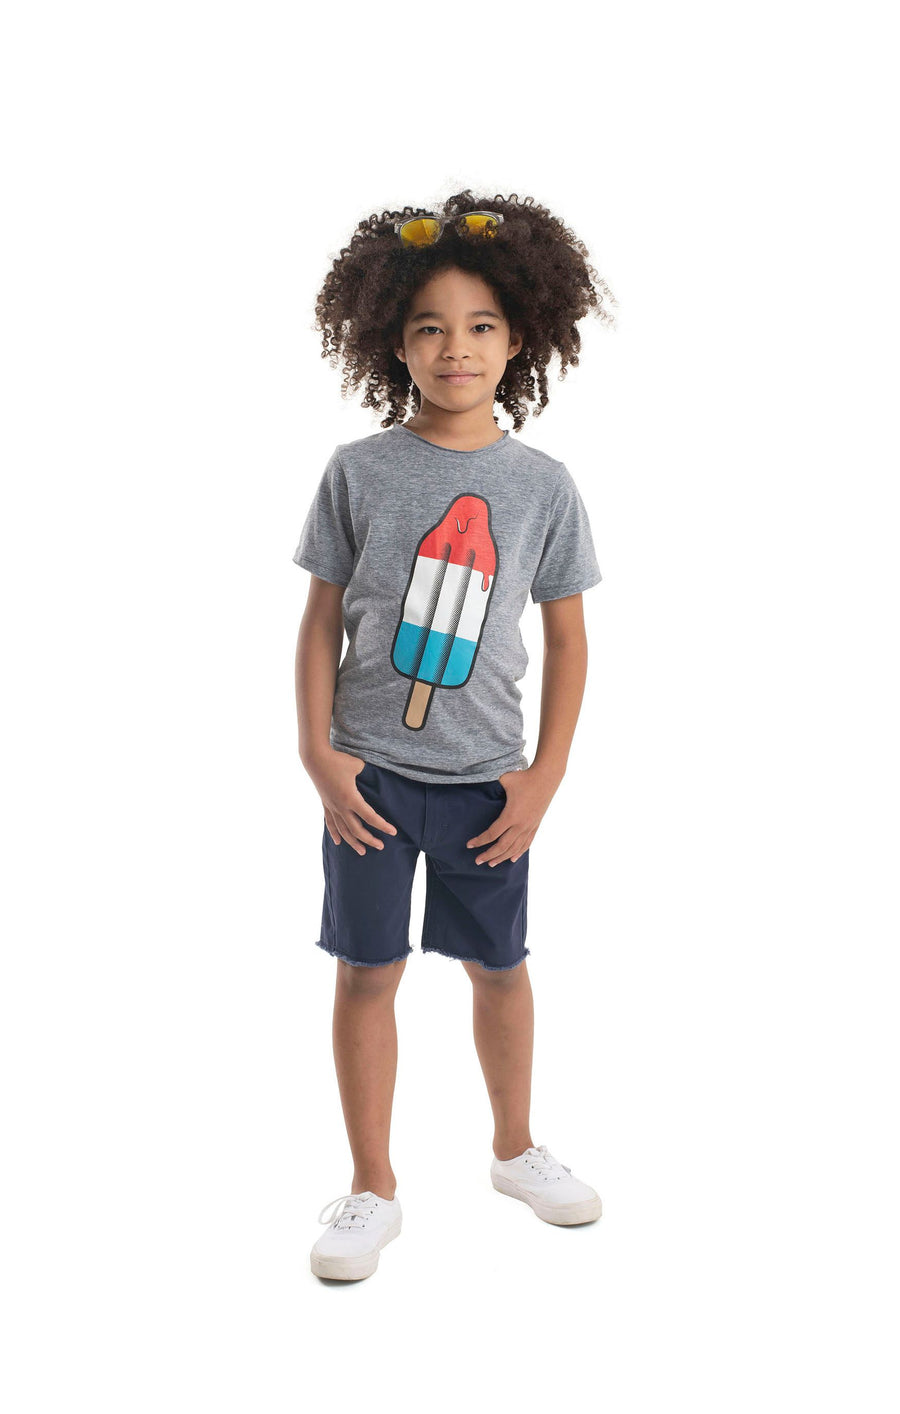 Red White and Blue Graphic Tee by Appaman